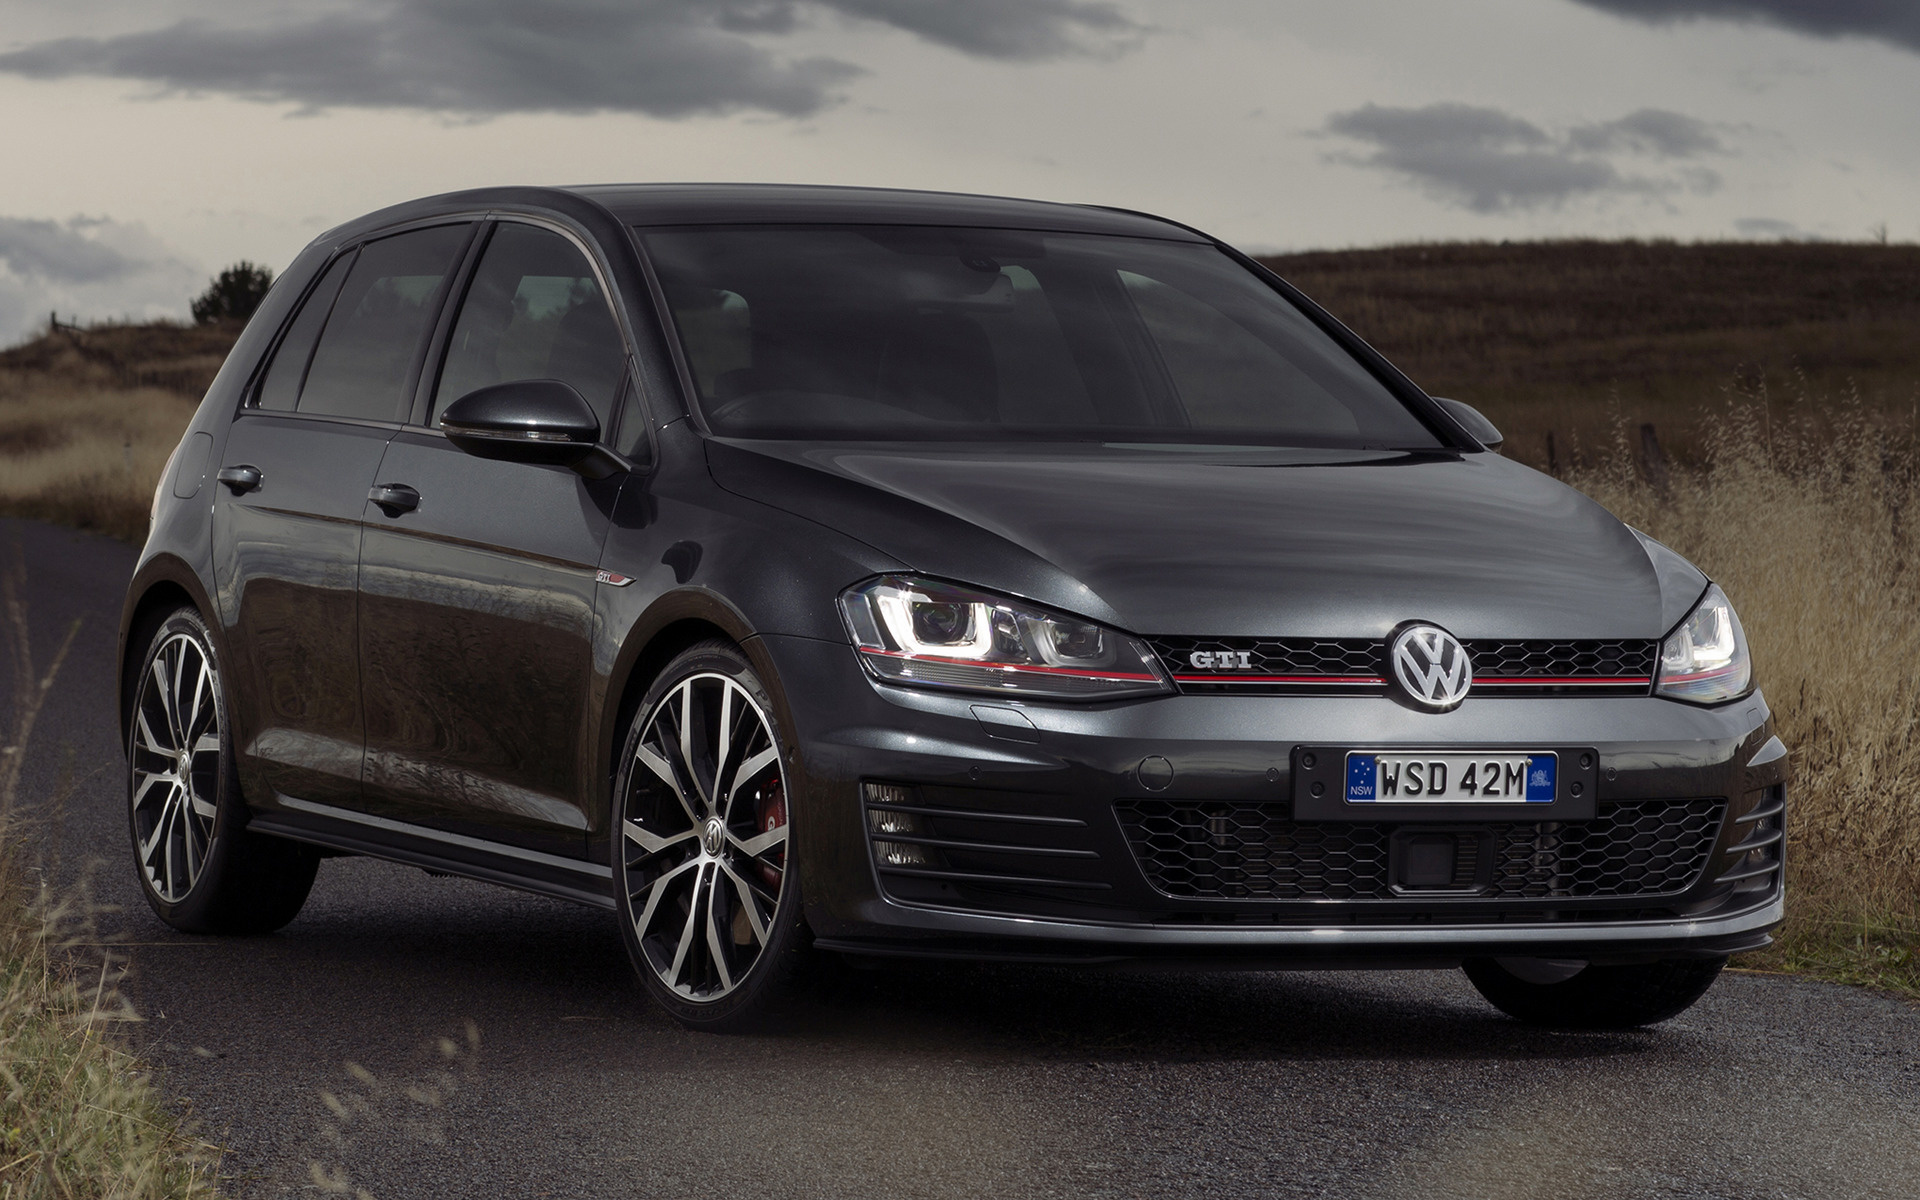 Volkswagen Golf Gti Performance 5 Door 2014 Au